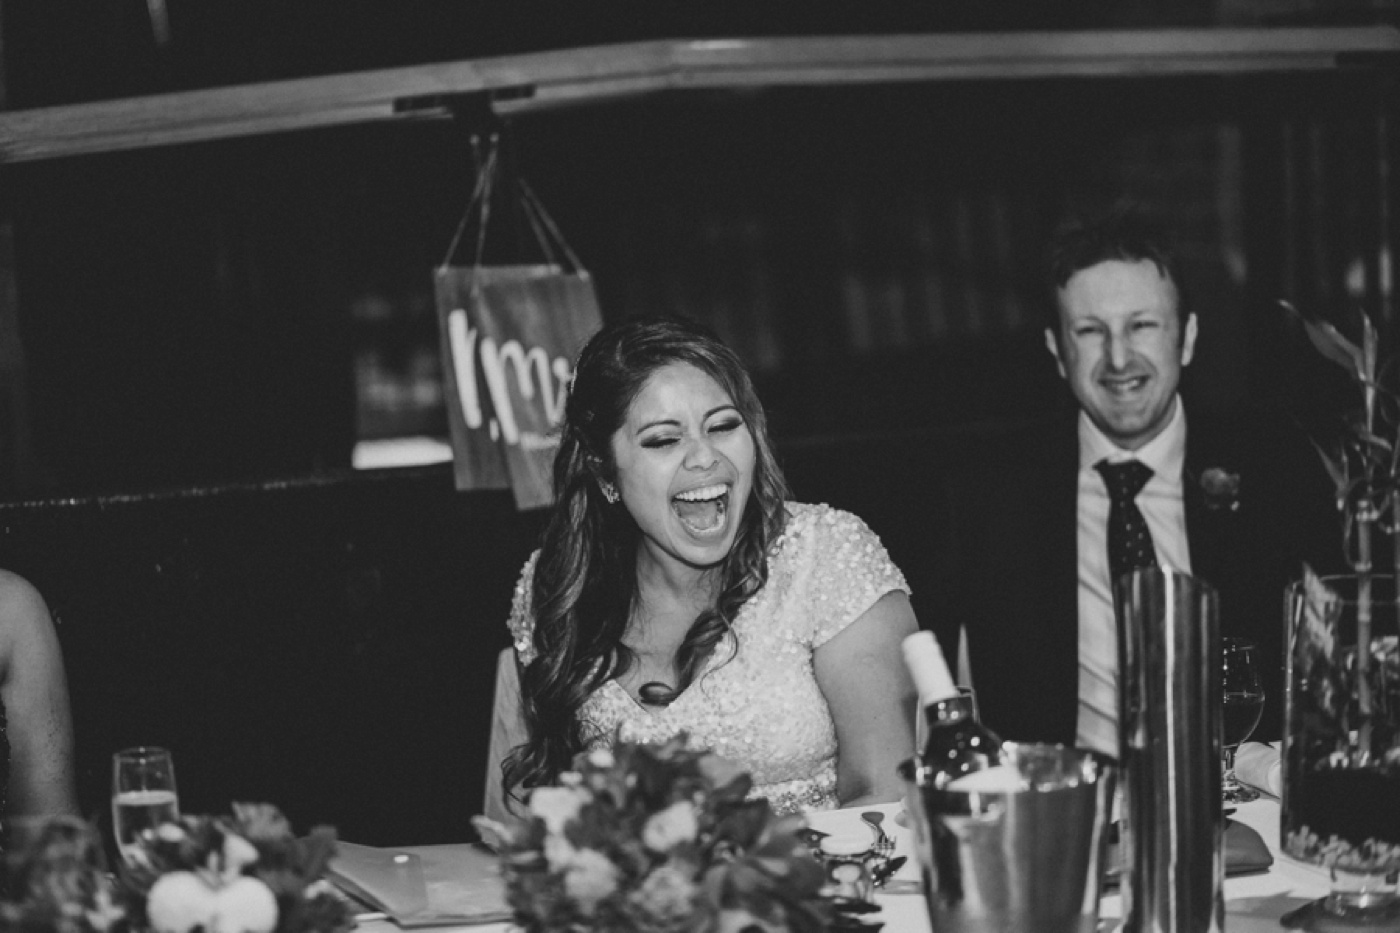 anitadaniel_melbourne-scienceworks-relaxed-fun-geek-wedding_melbourne-candid-wedding-photography_85